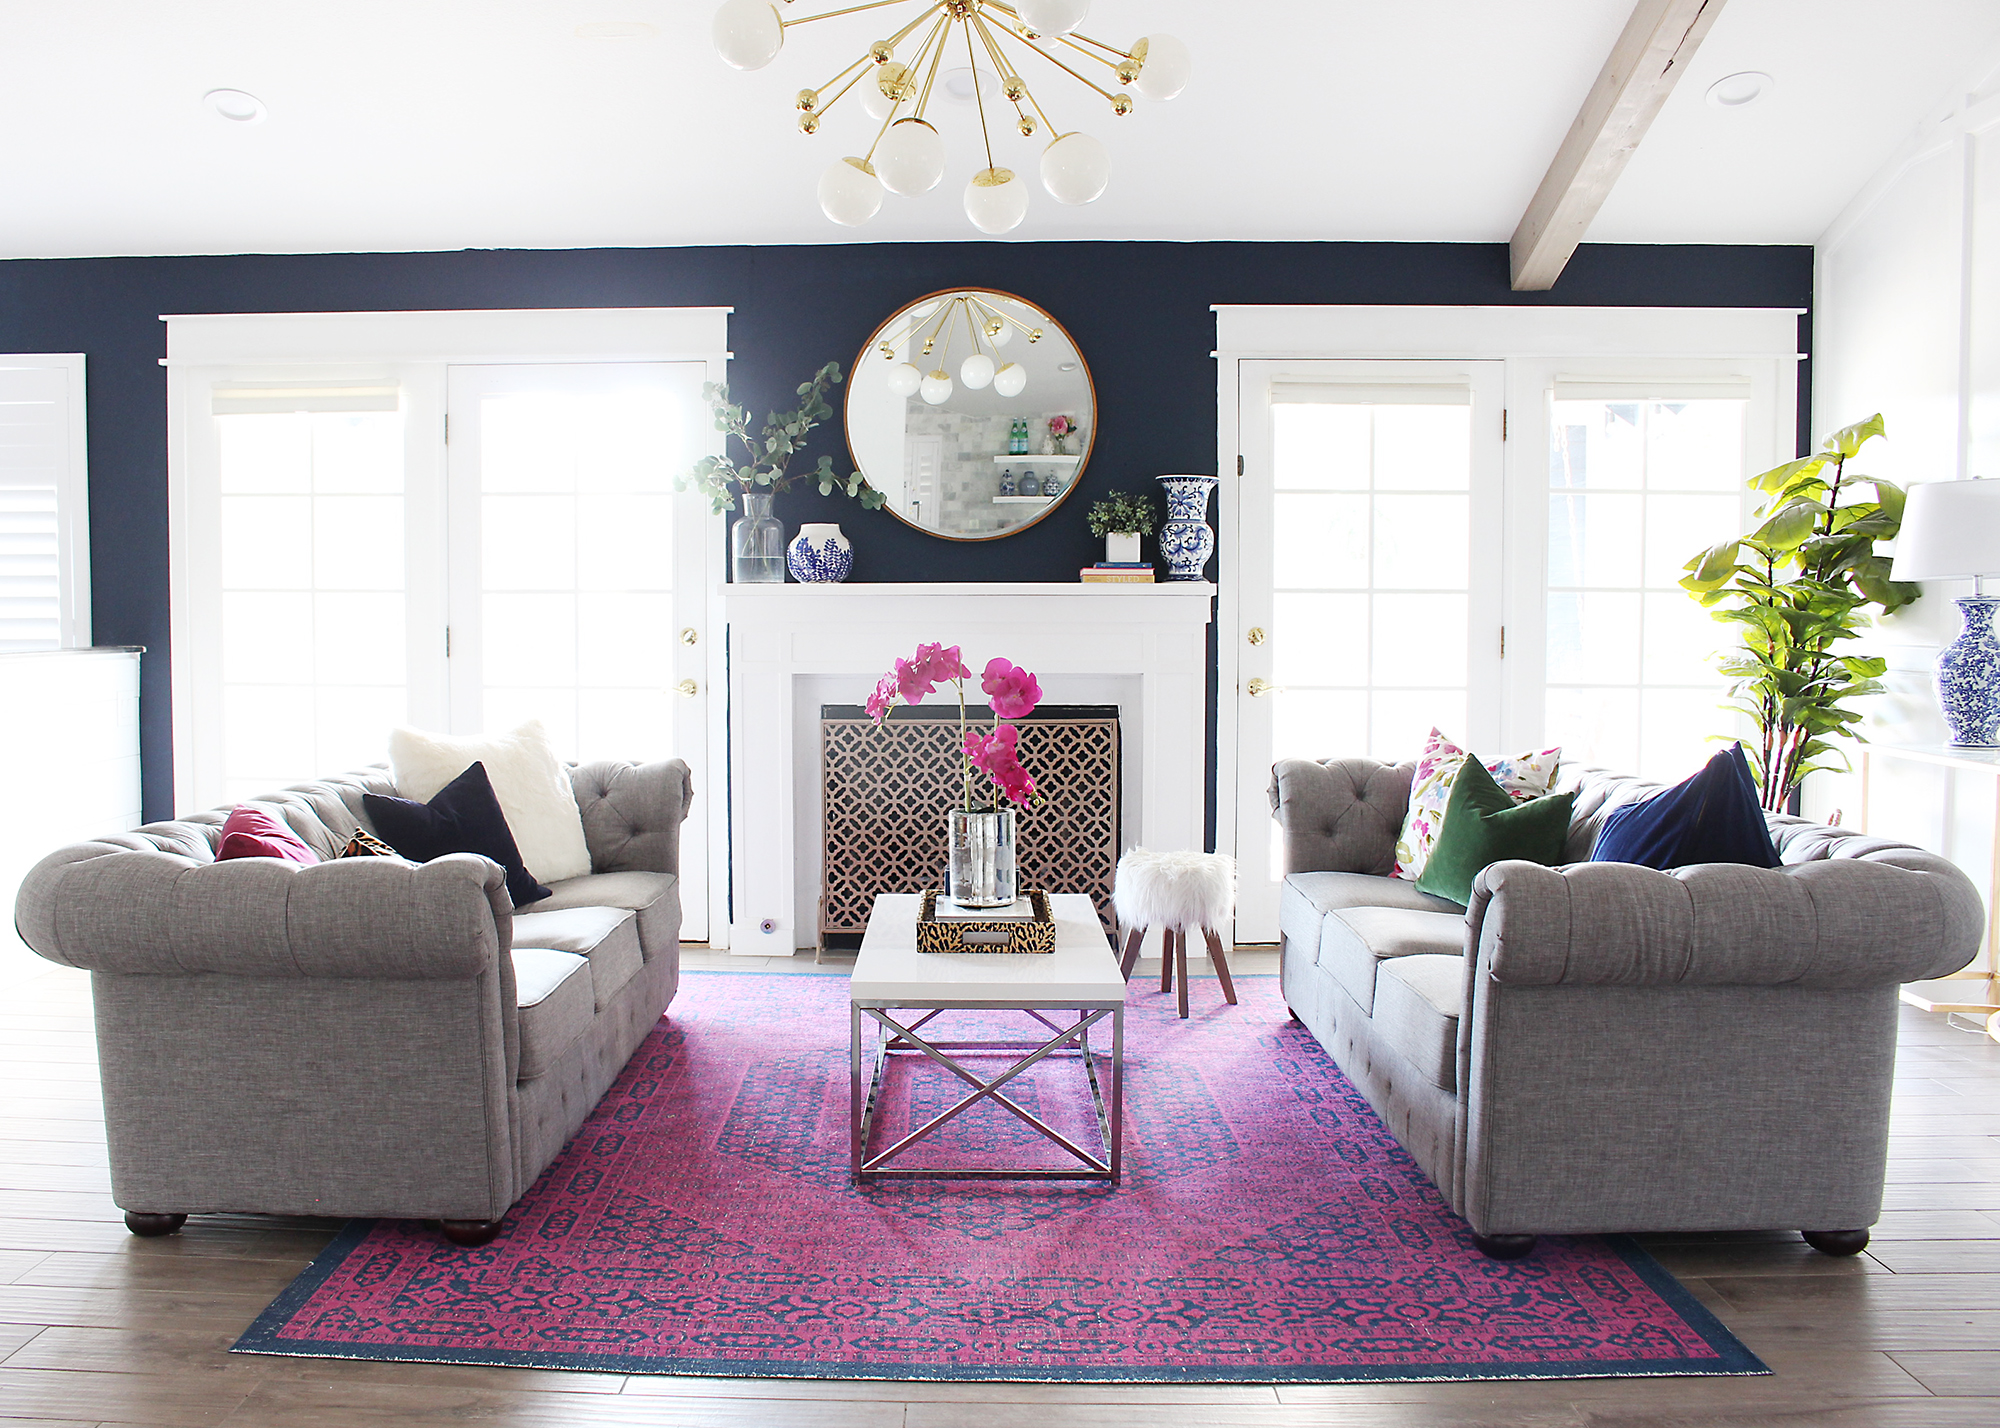 Park Home Reno: Main Floor Rug Round Up - Classy Clutter